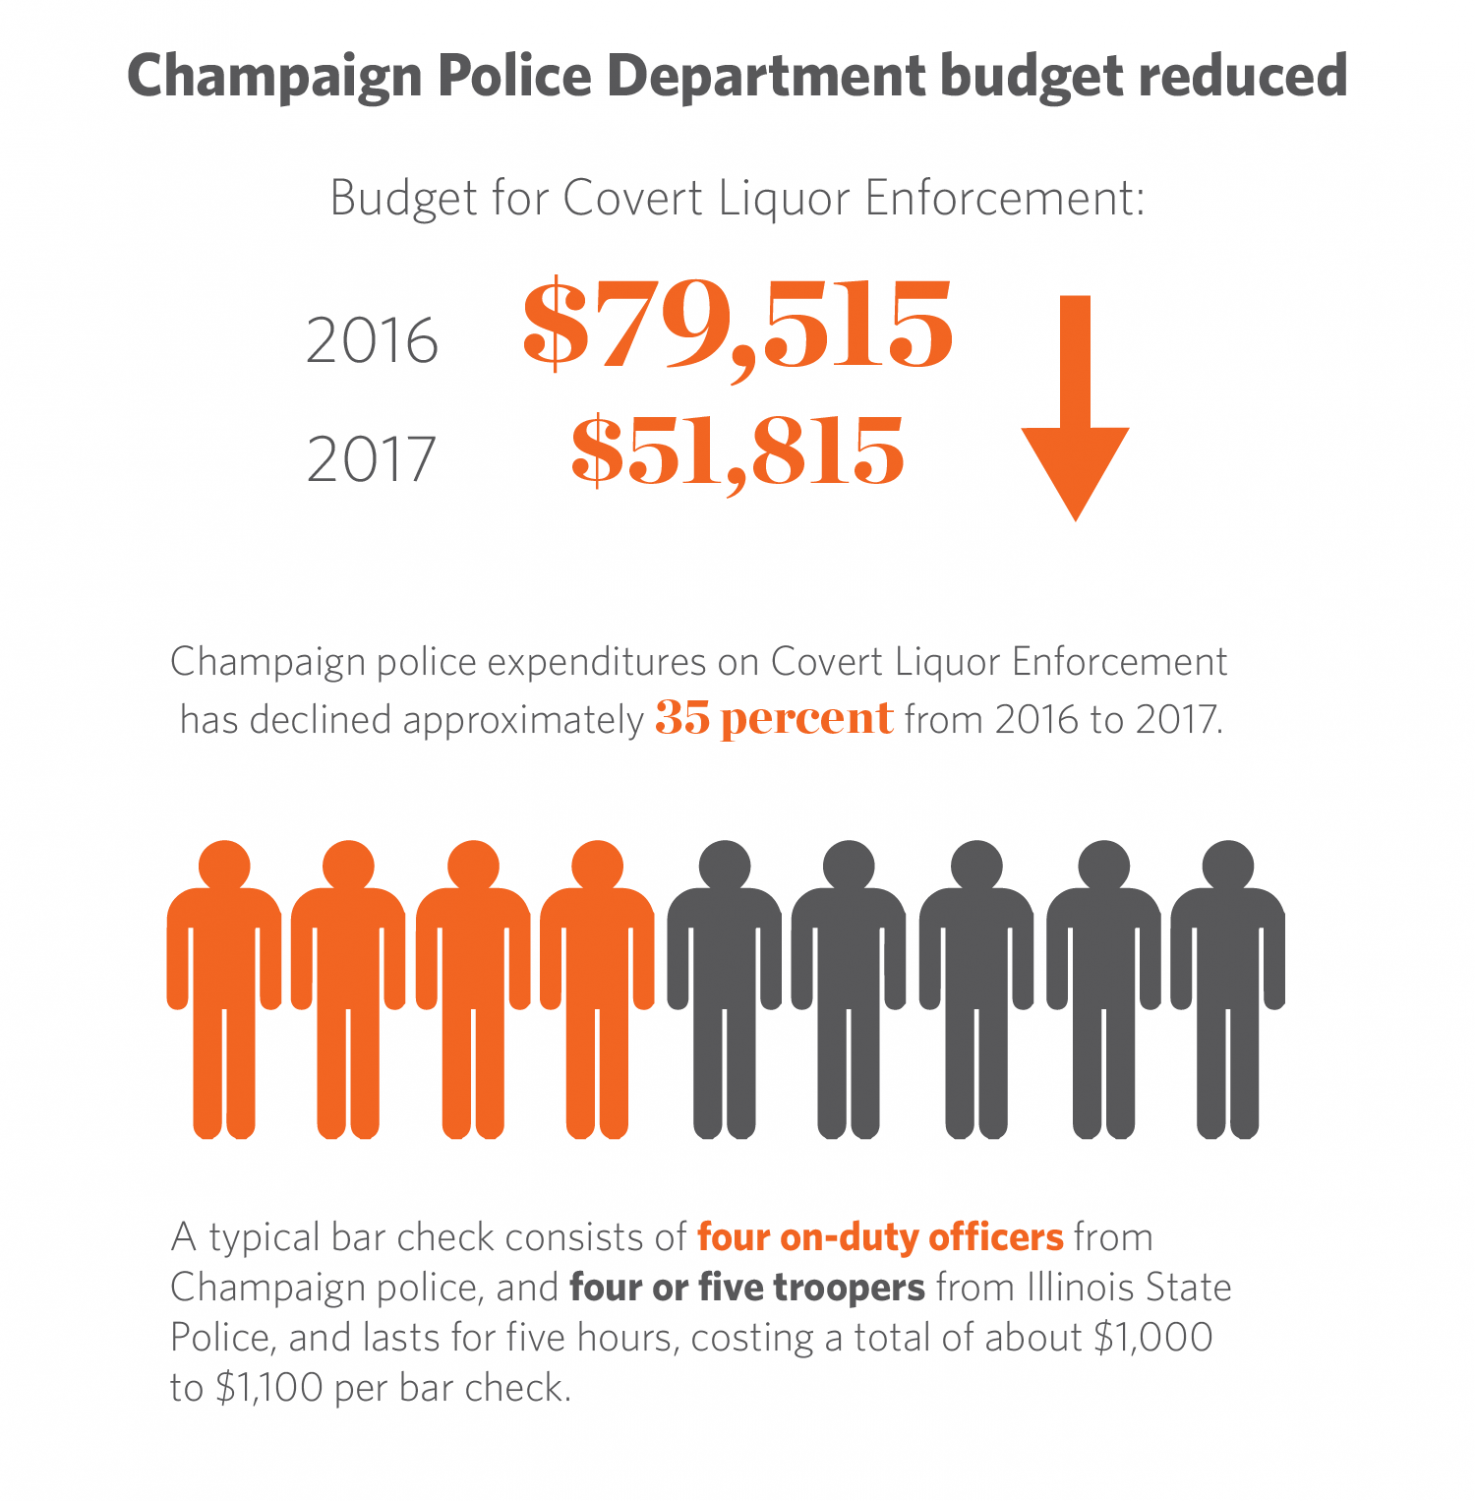 Source: City of Champaign, Adopted Annual Budget